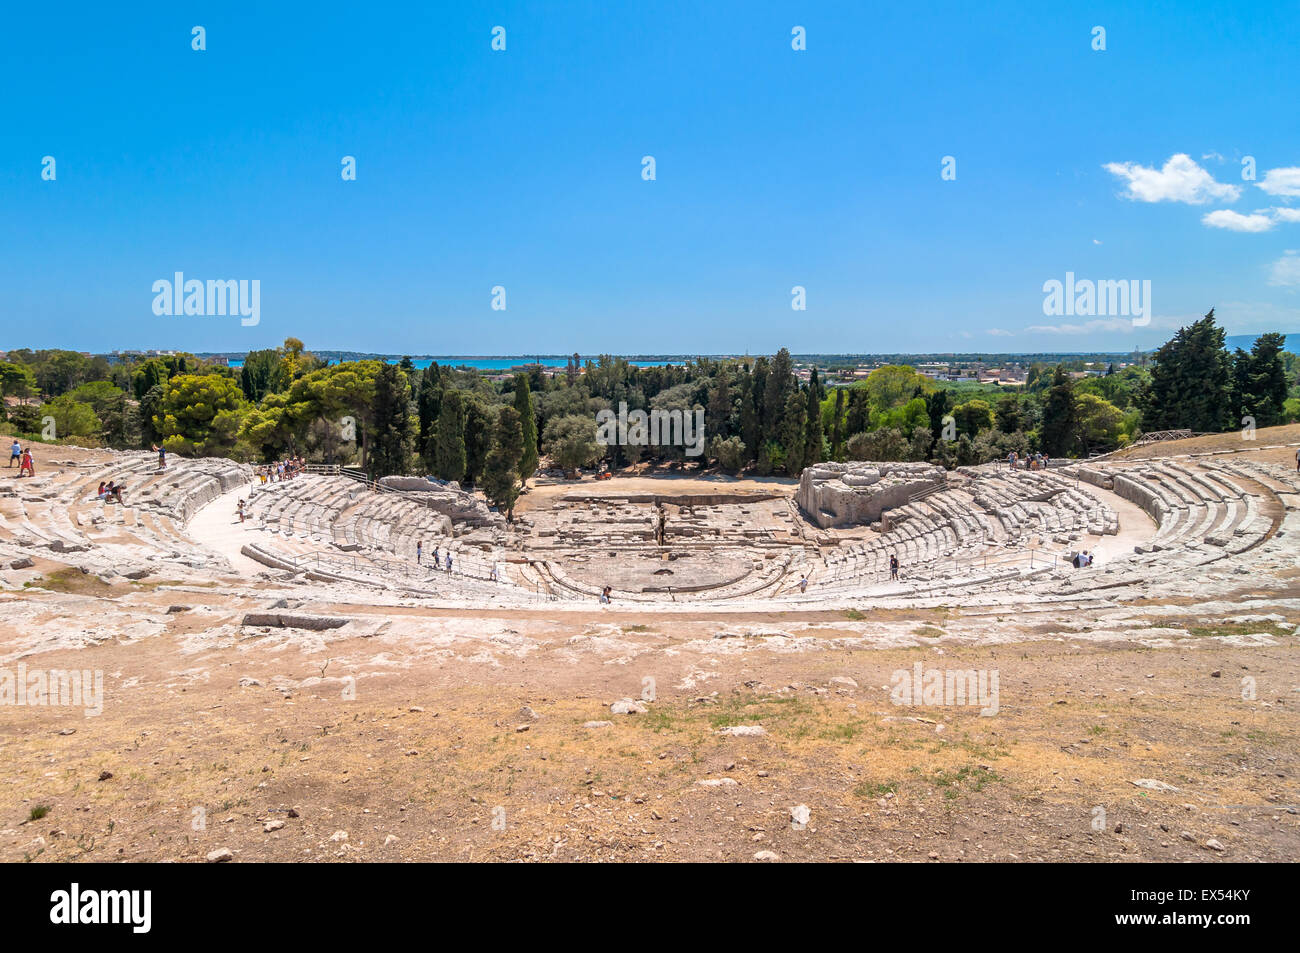 ancient Greek theater of Syracuse, Sicily, Italy. This monument is in the Unesco world heritage list. - Stock Image